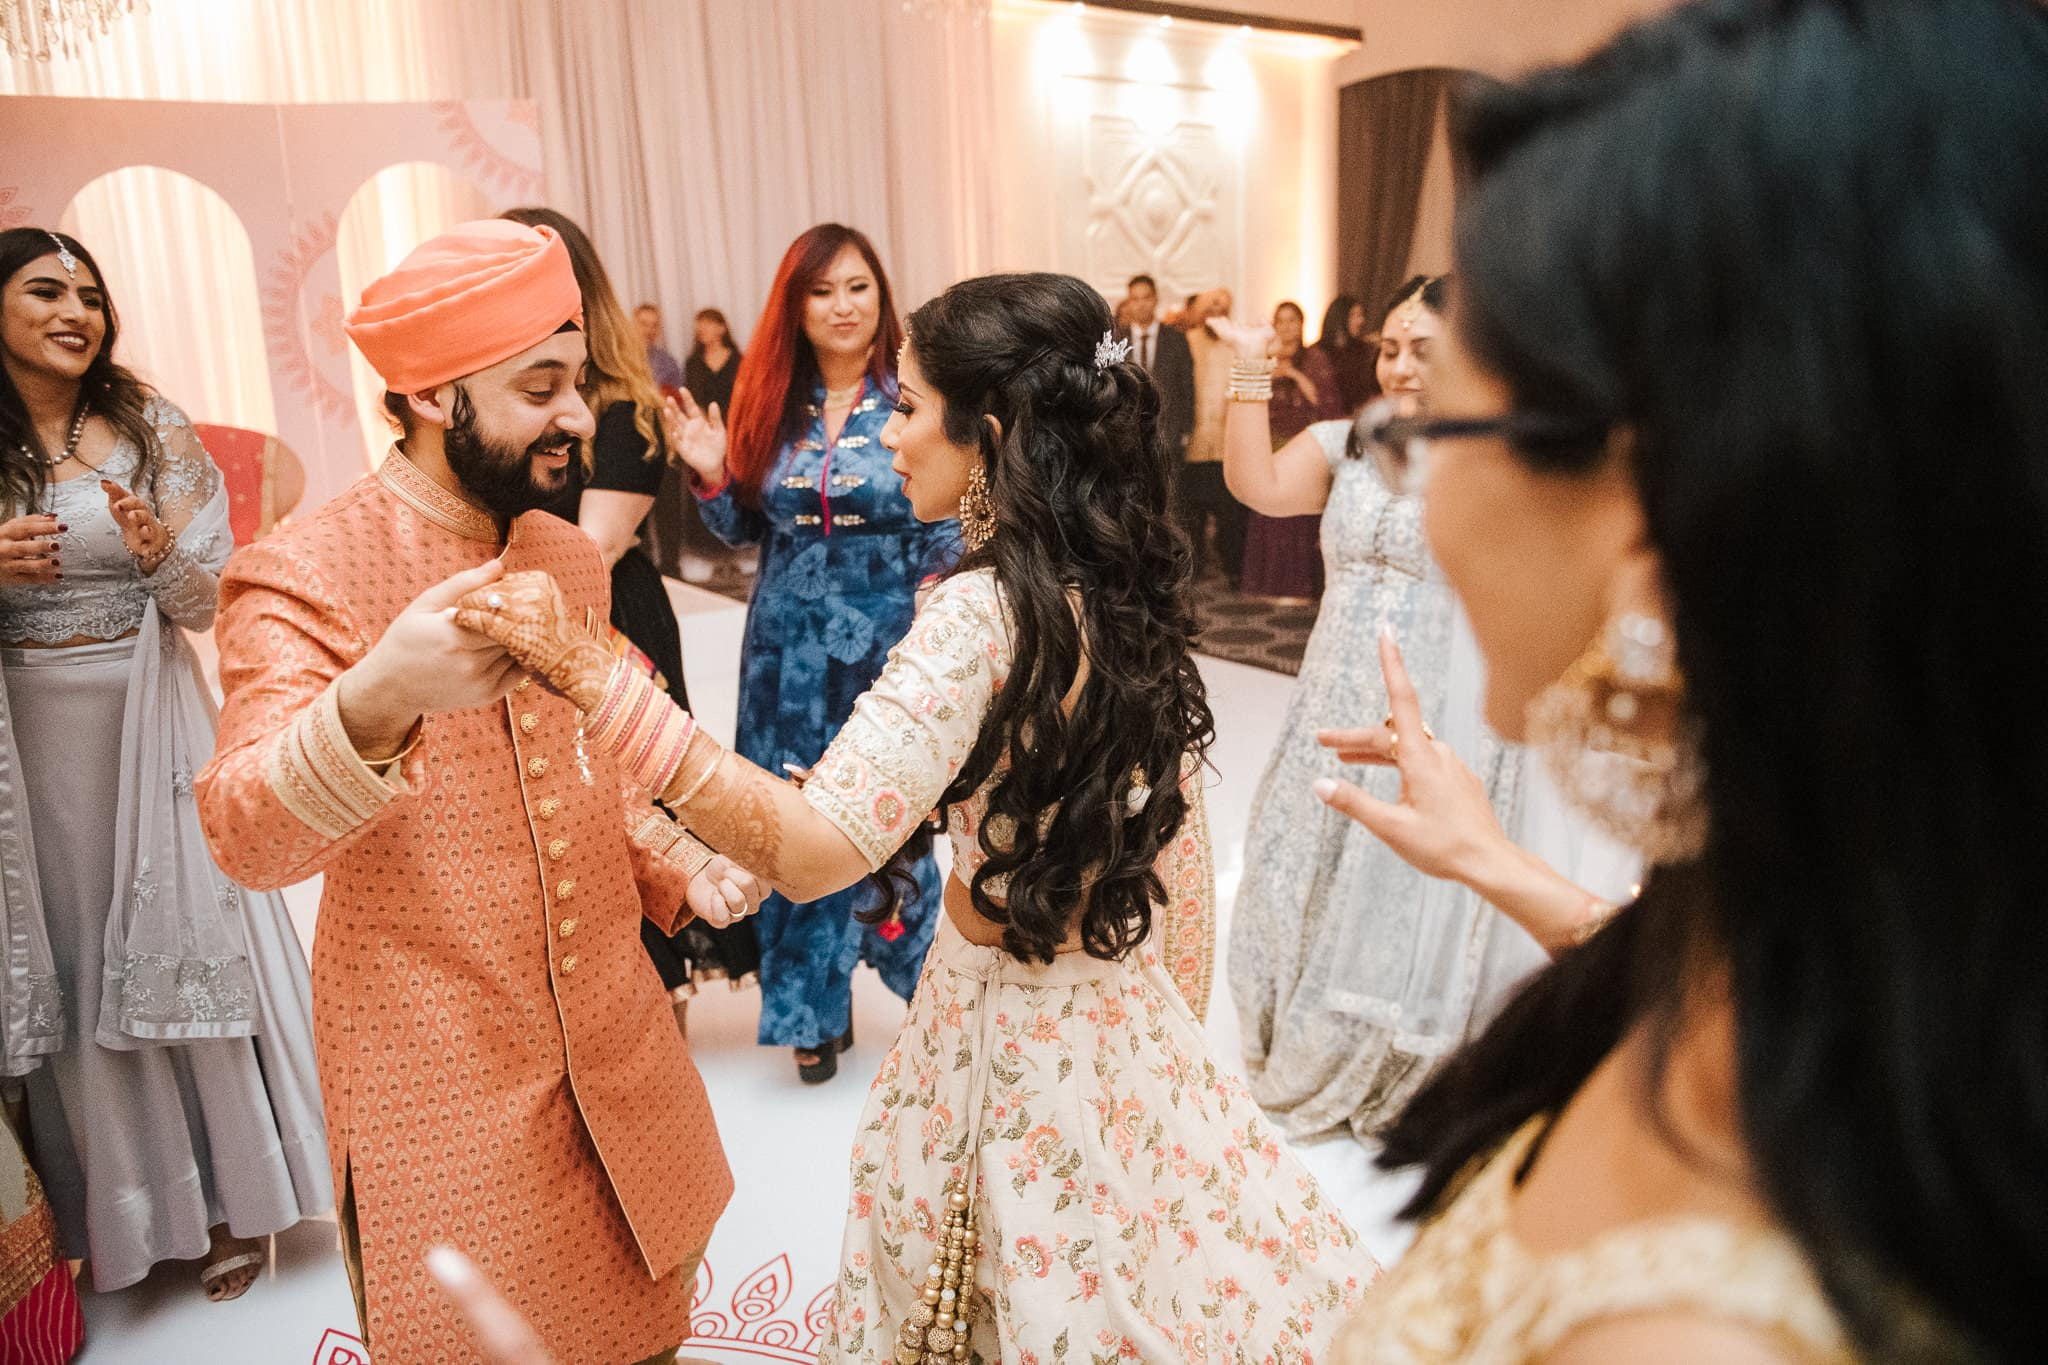 Simran and Anmol's vibrant and modern Sikh wedding celebration began with their Sangeet party in Melbourne. The function was held at the Vogue Ballroom with wedding photography captured by Indian wedding photographer, Bhargav Boppa. Simran danced all night long with her bridal party on the wedding dancefloor.